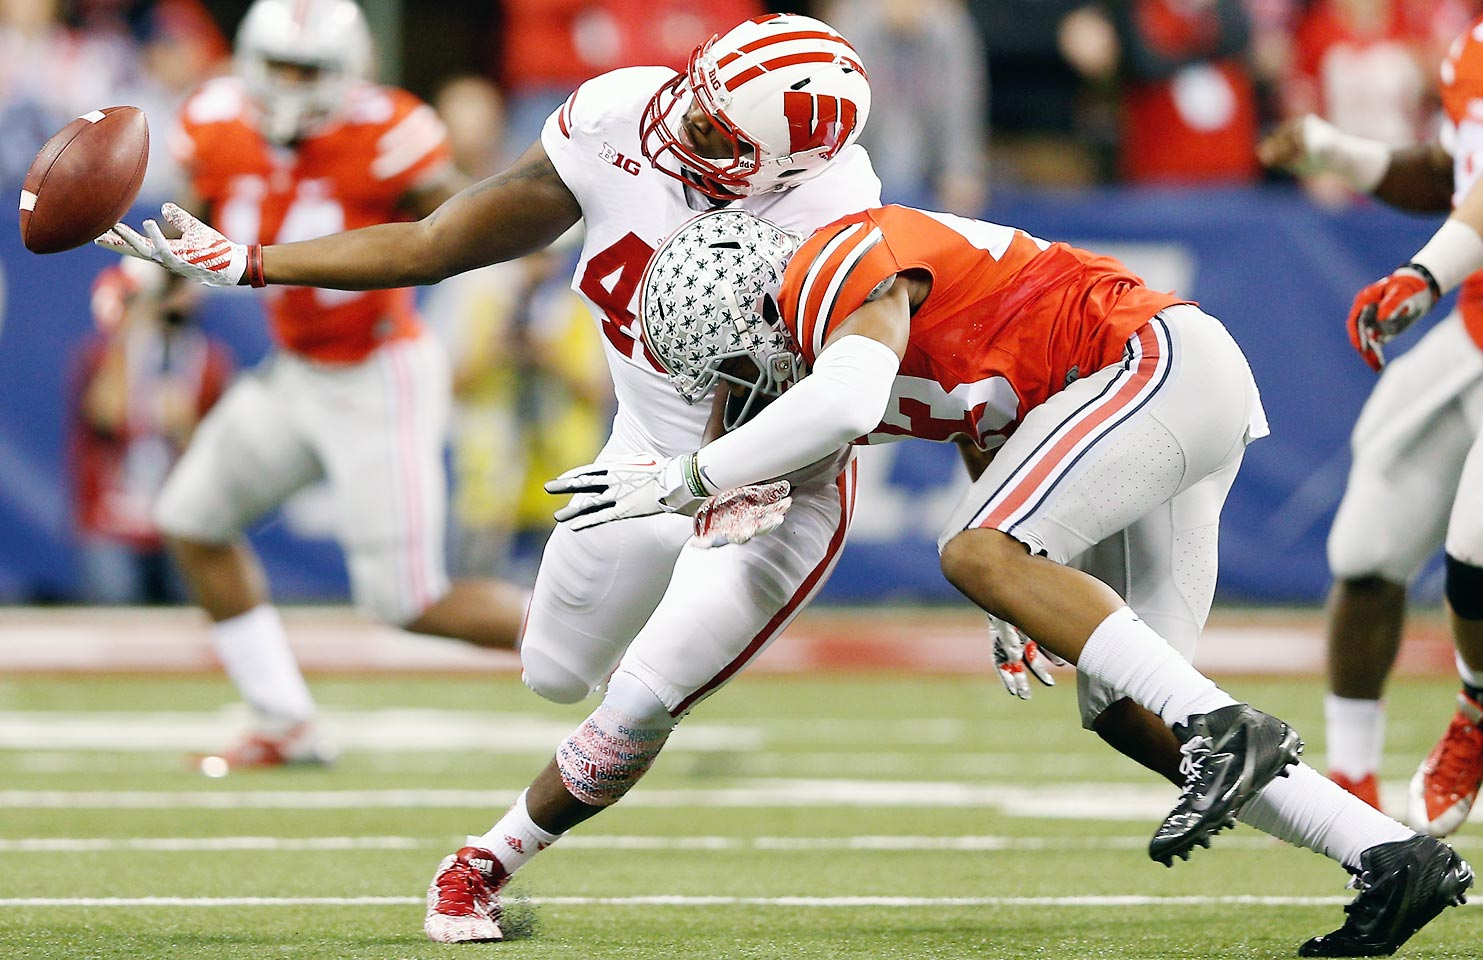 Lee returned from an injury that ended his freshman season to become a vital part of the Buckeyes' defense last year. His athleticism made him a threat in coverage or in the backfield, and the young linebacker isn't afraid to hit either.